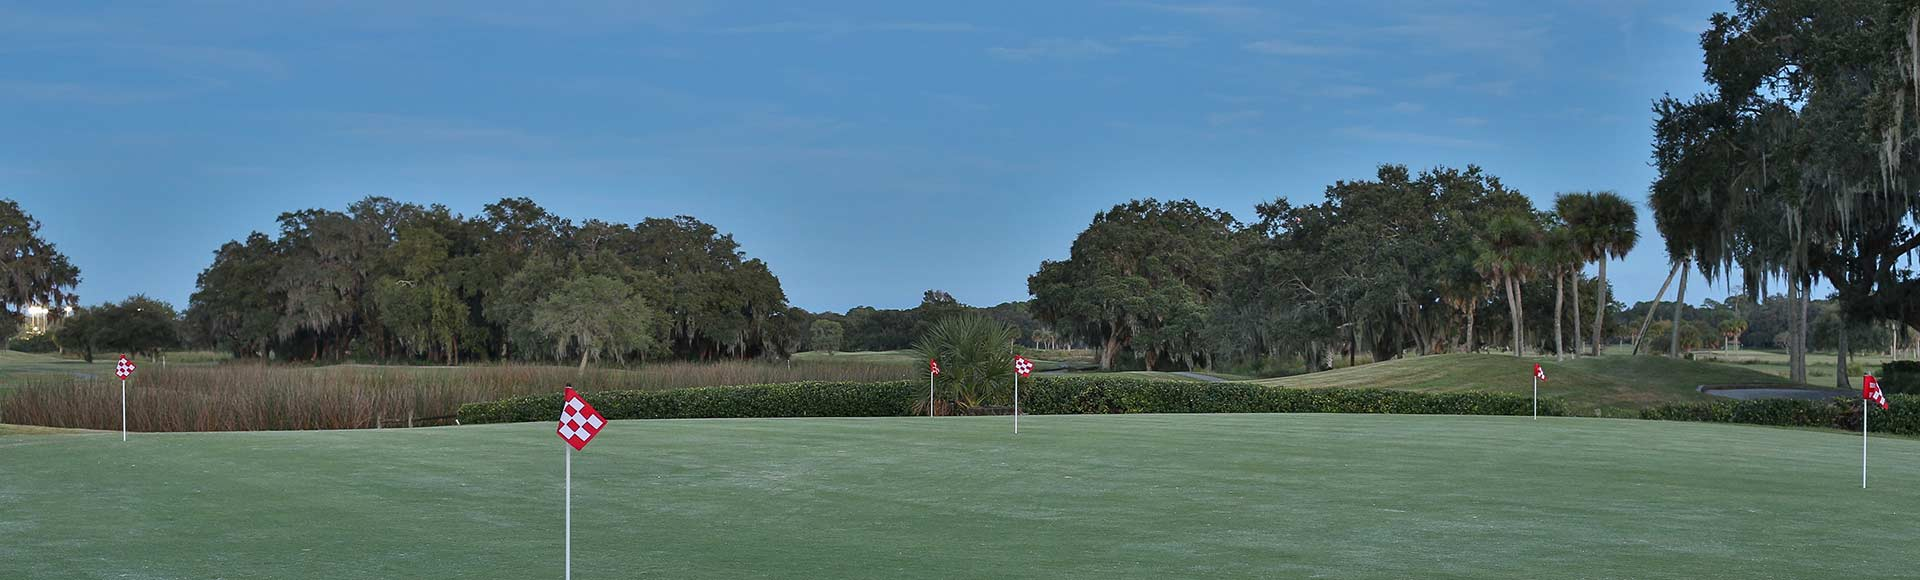 Image of a putting green. shows 5 red and white checkered flags at various lengths apart from one anther. the background is a blue skyed day on the golf course. palm and oak trees fill the space.